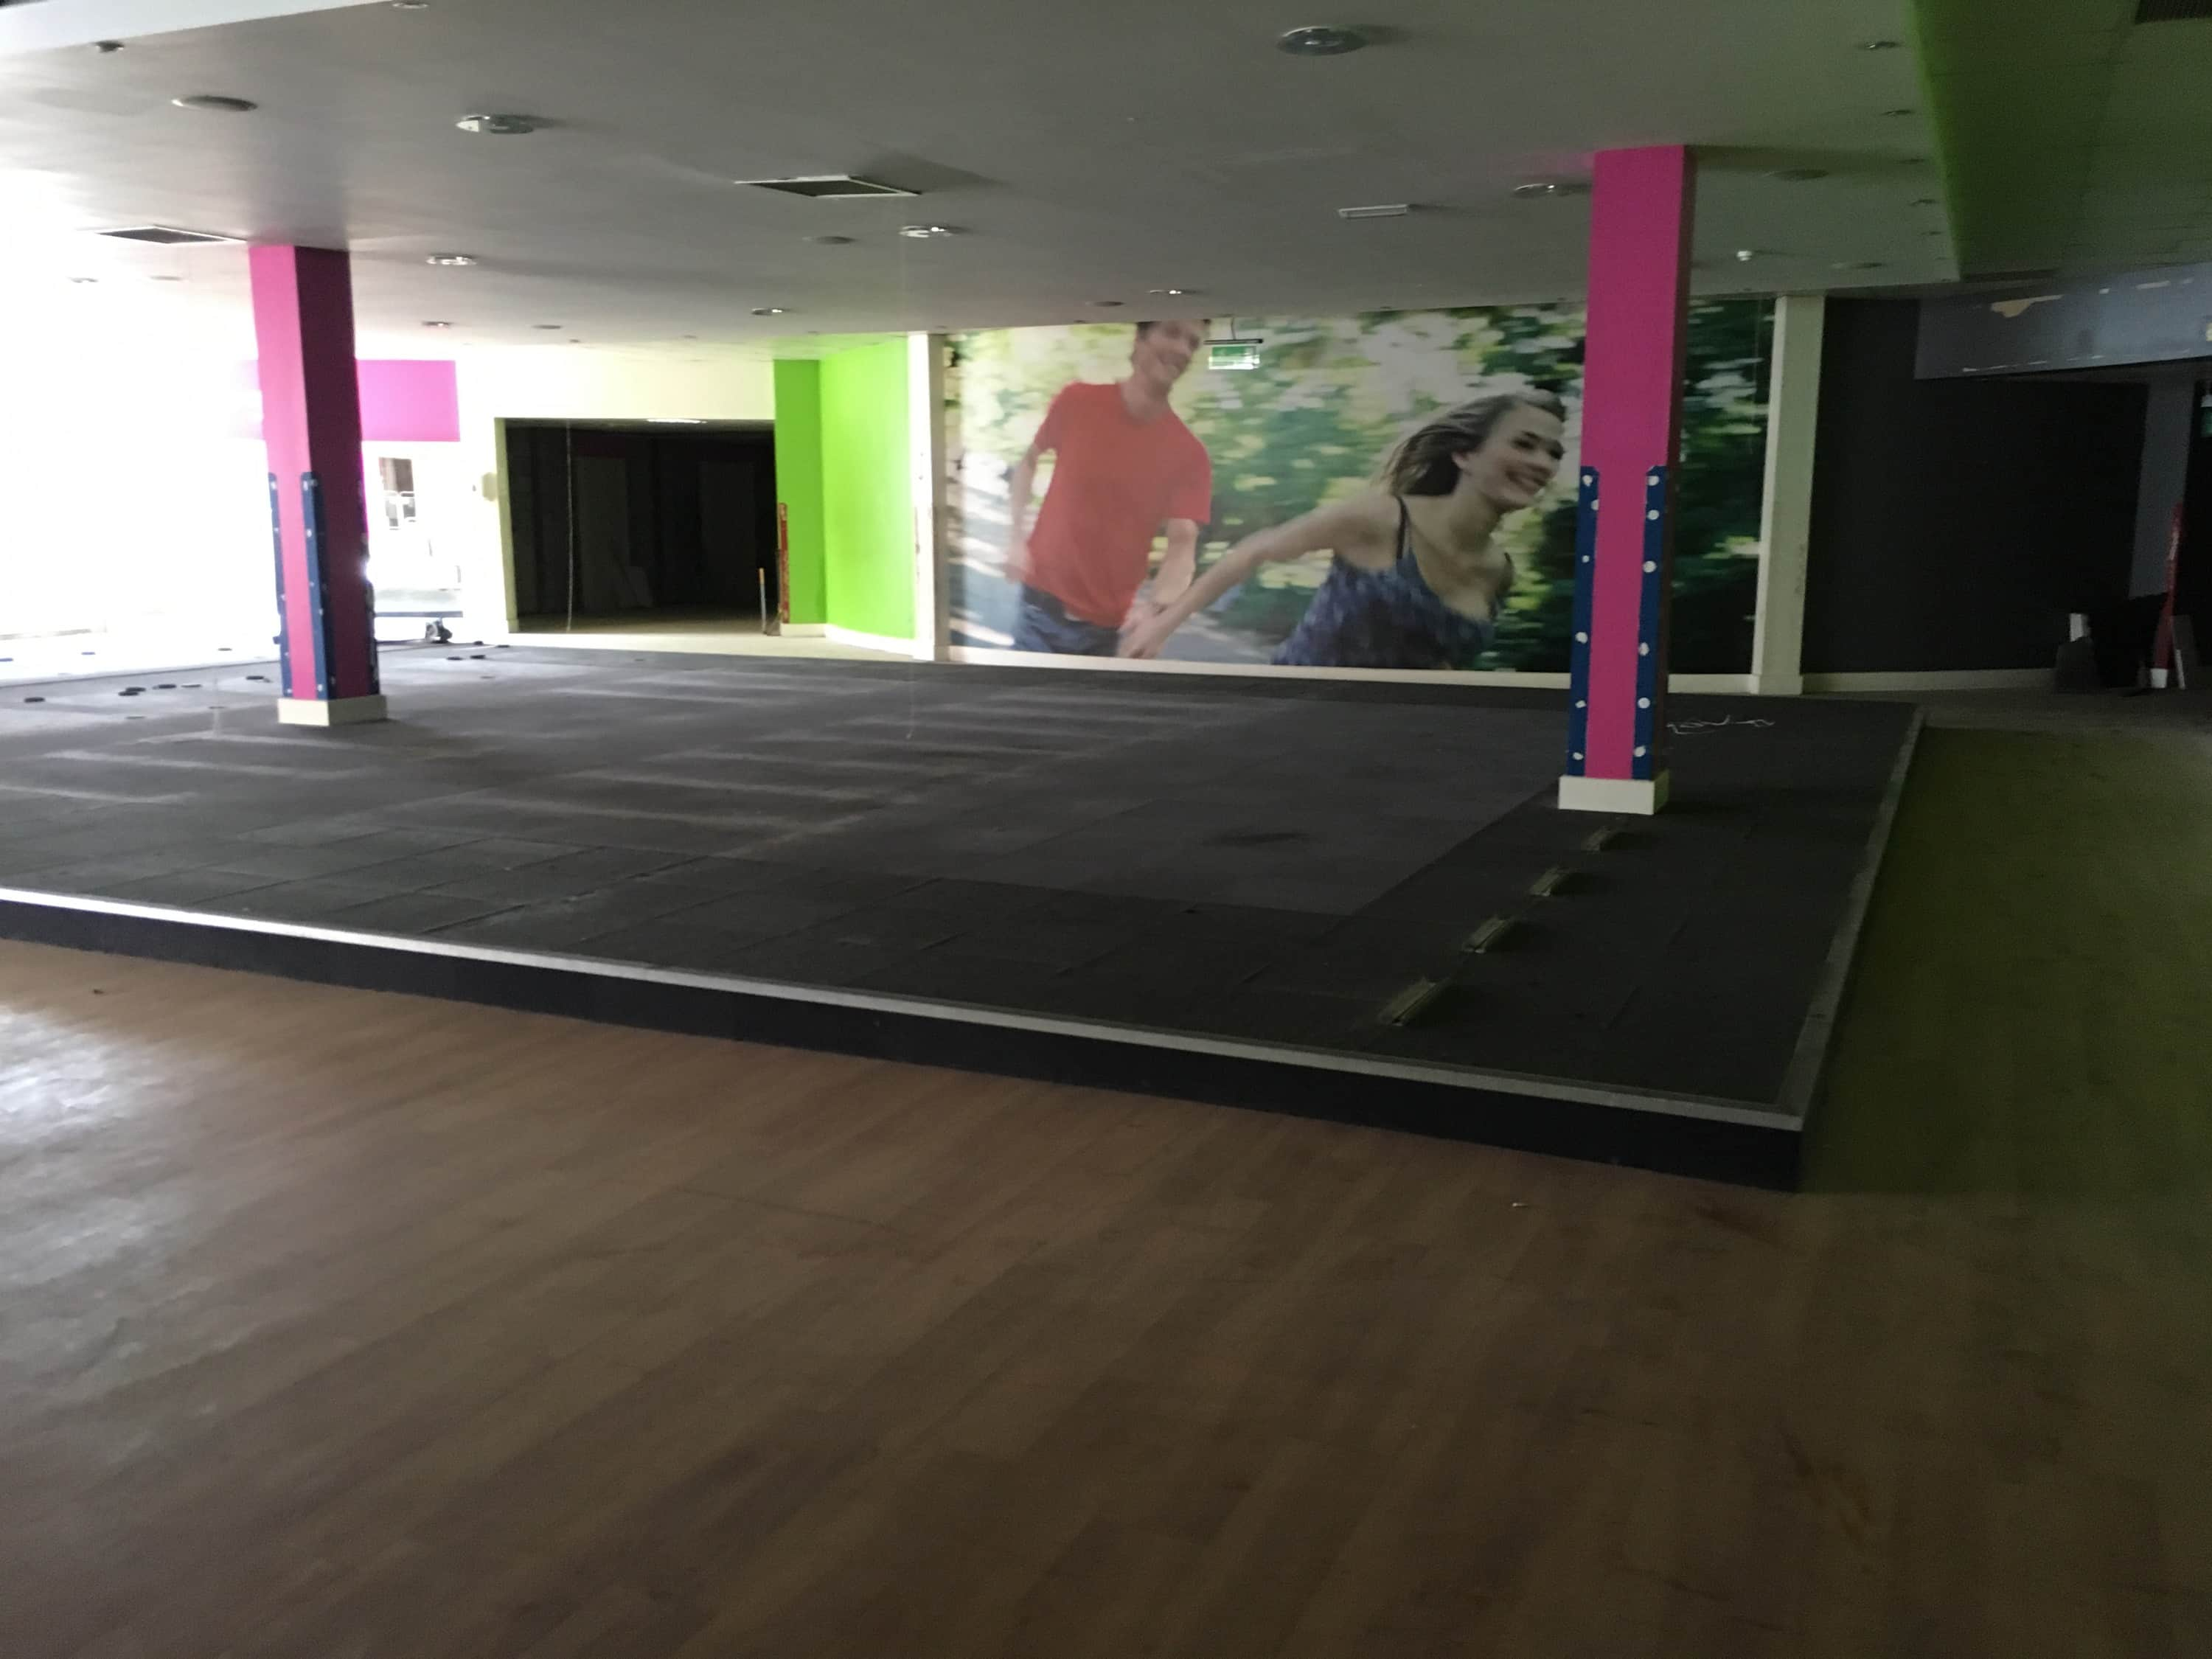 An image of the site before the fit out, depicting an empty former gym in a leisure complex in Milton Keynes